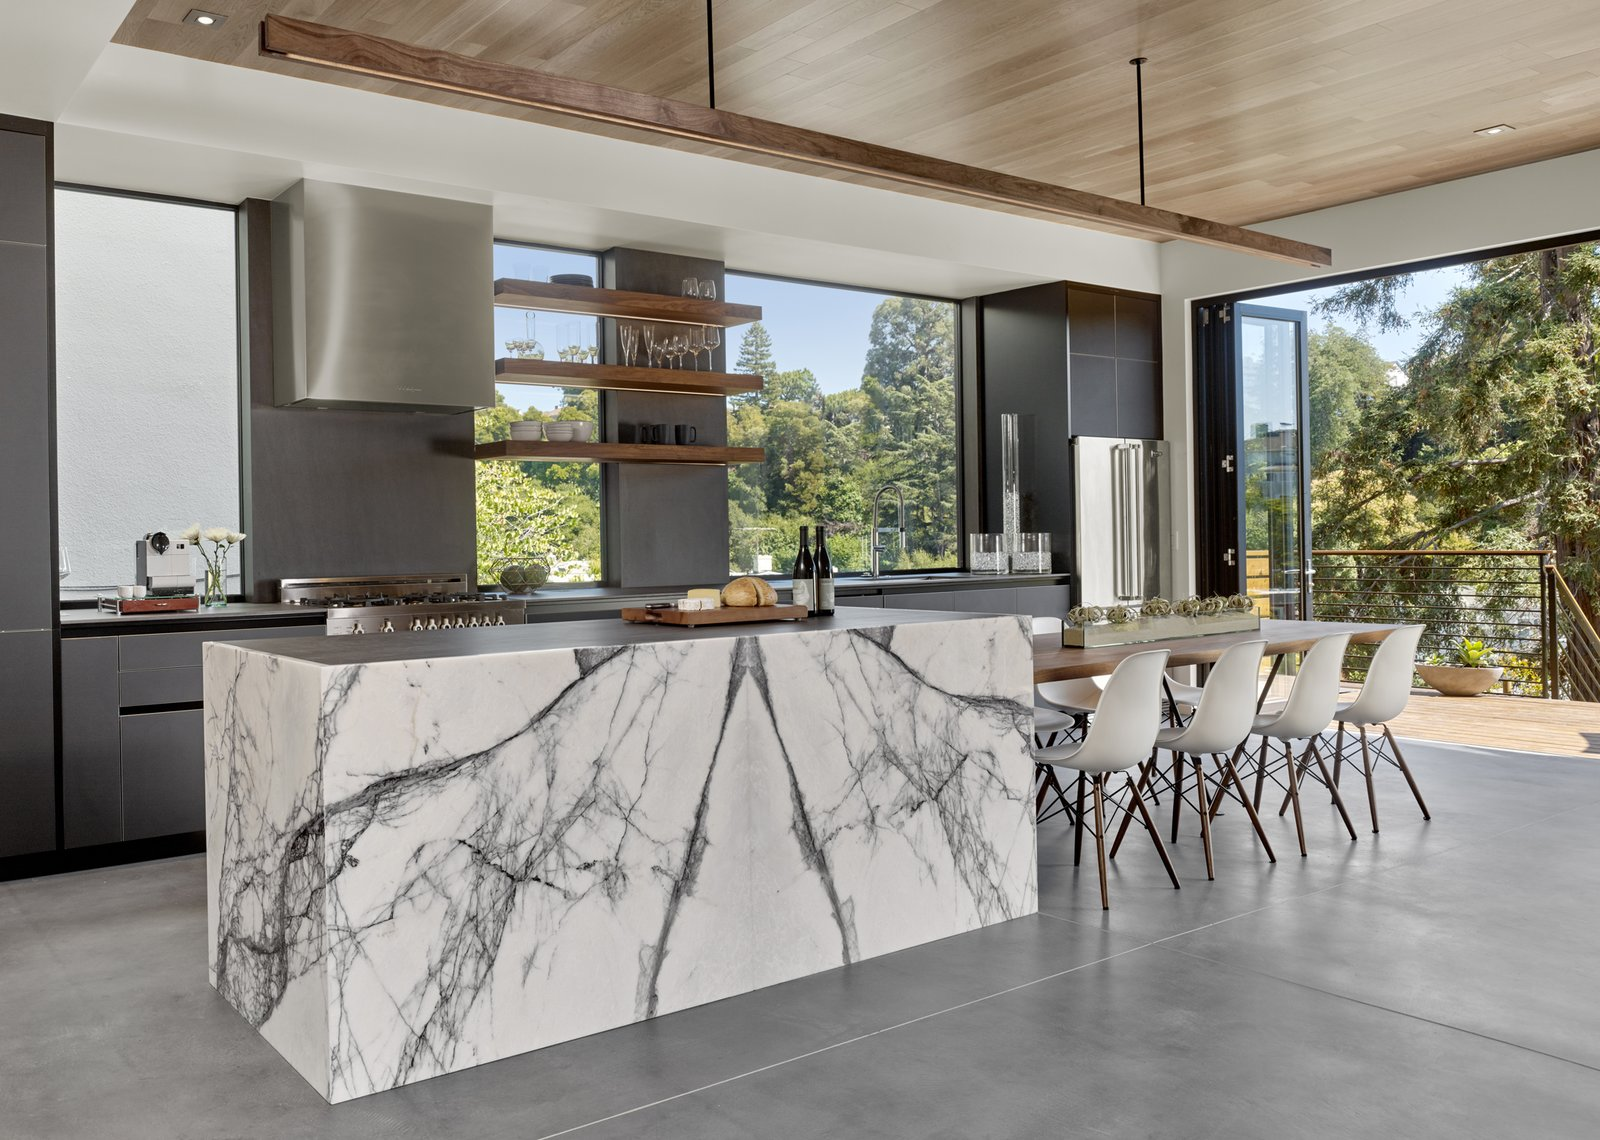 The cabinets are black matte glass by Leicht. The floating walnut table, shelves and light are by Matt Eastvold. Tagged: Kitchen, Range Hood, Refrigerator, and Marble Counter.  Trestle Glen Modern by Knock Architecture + Design